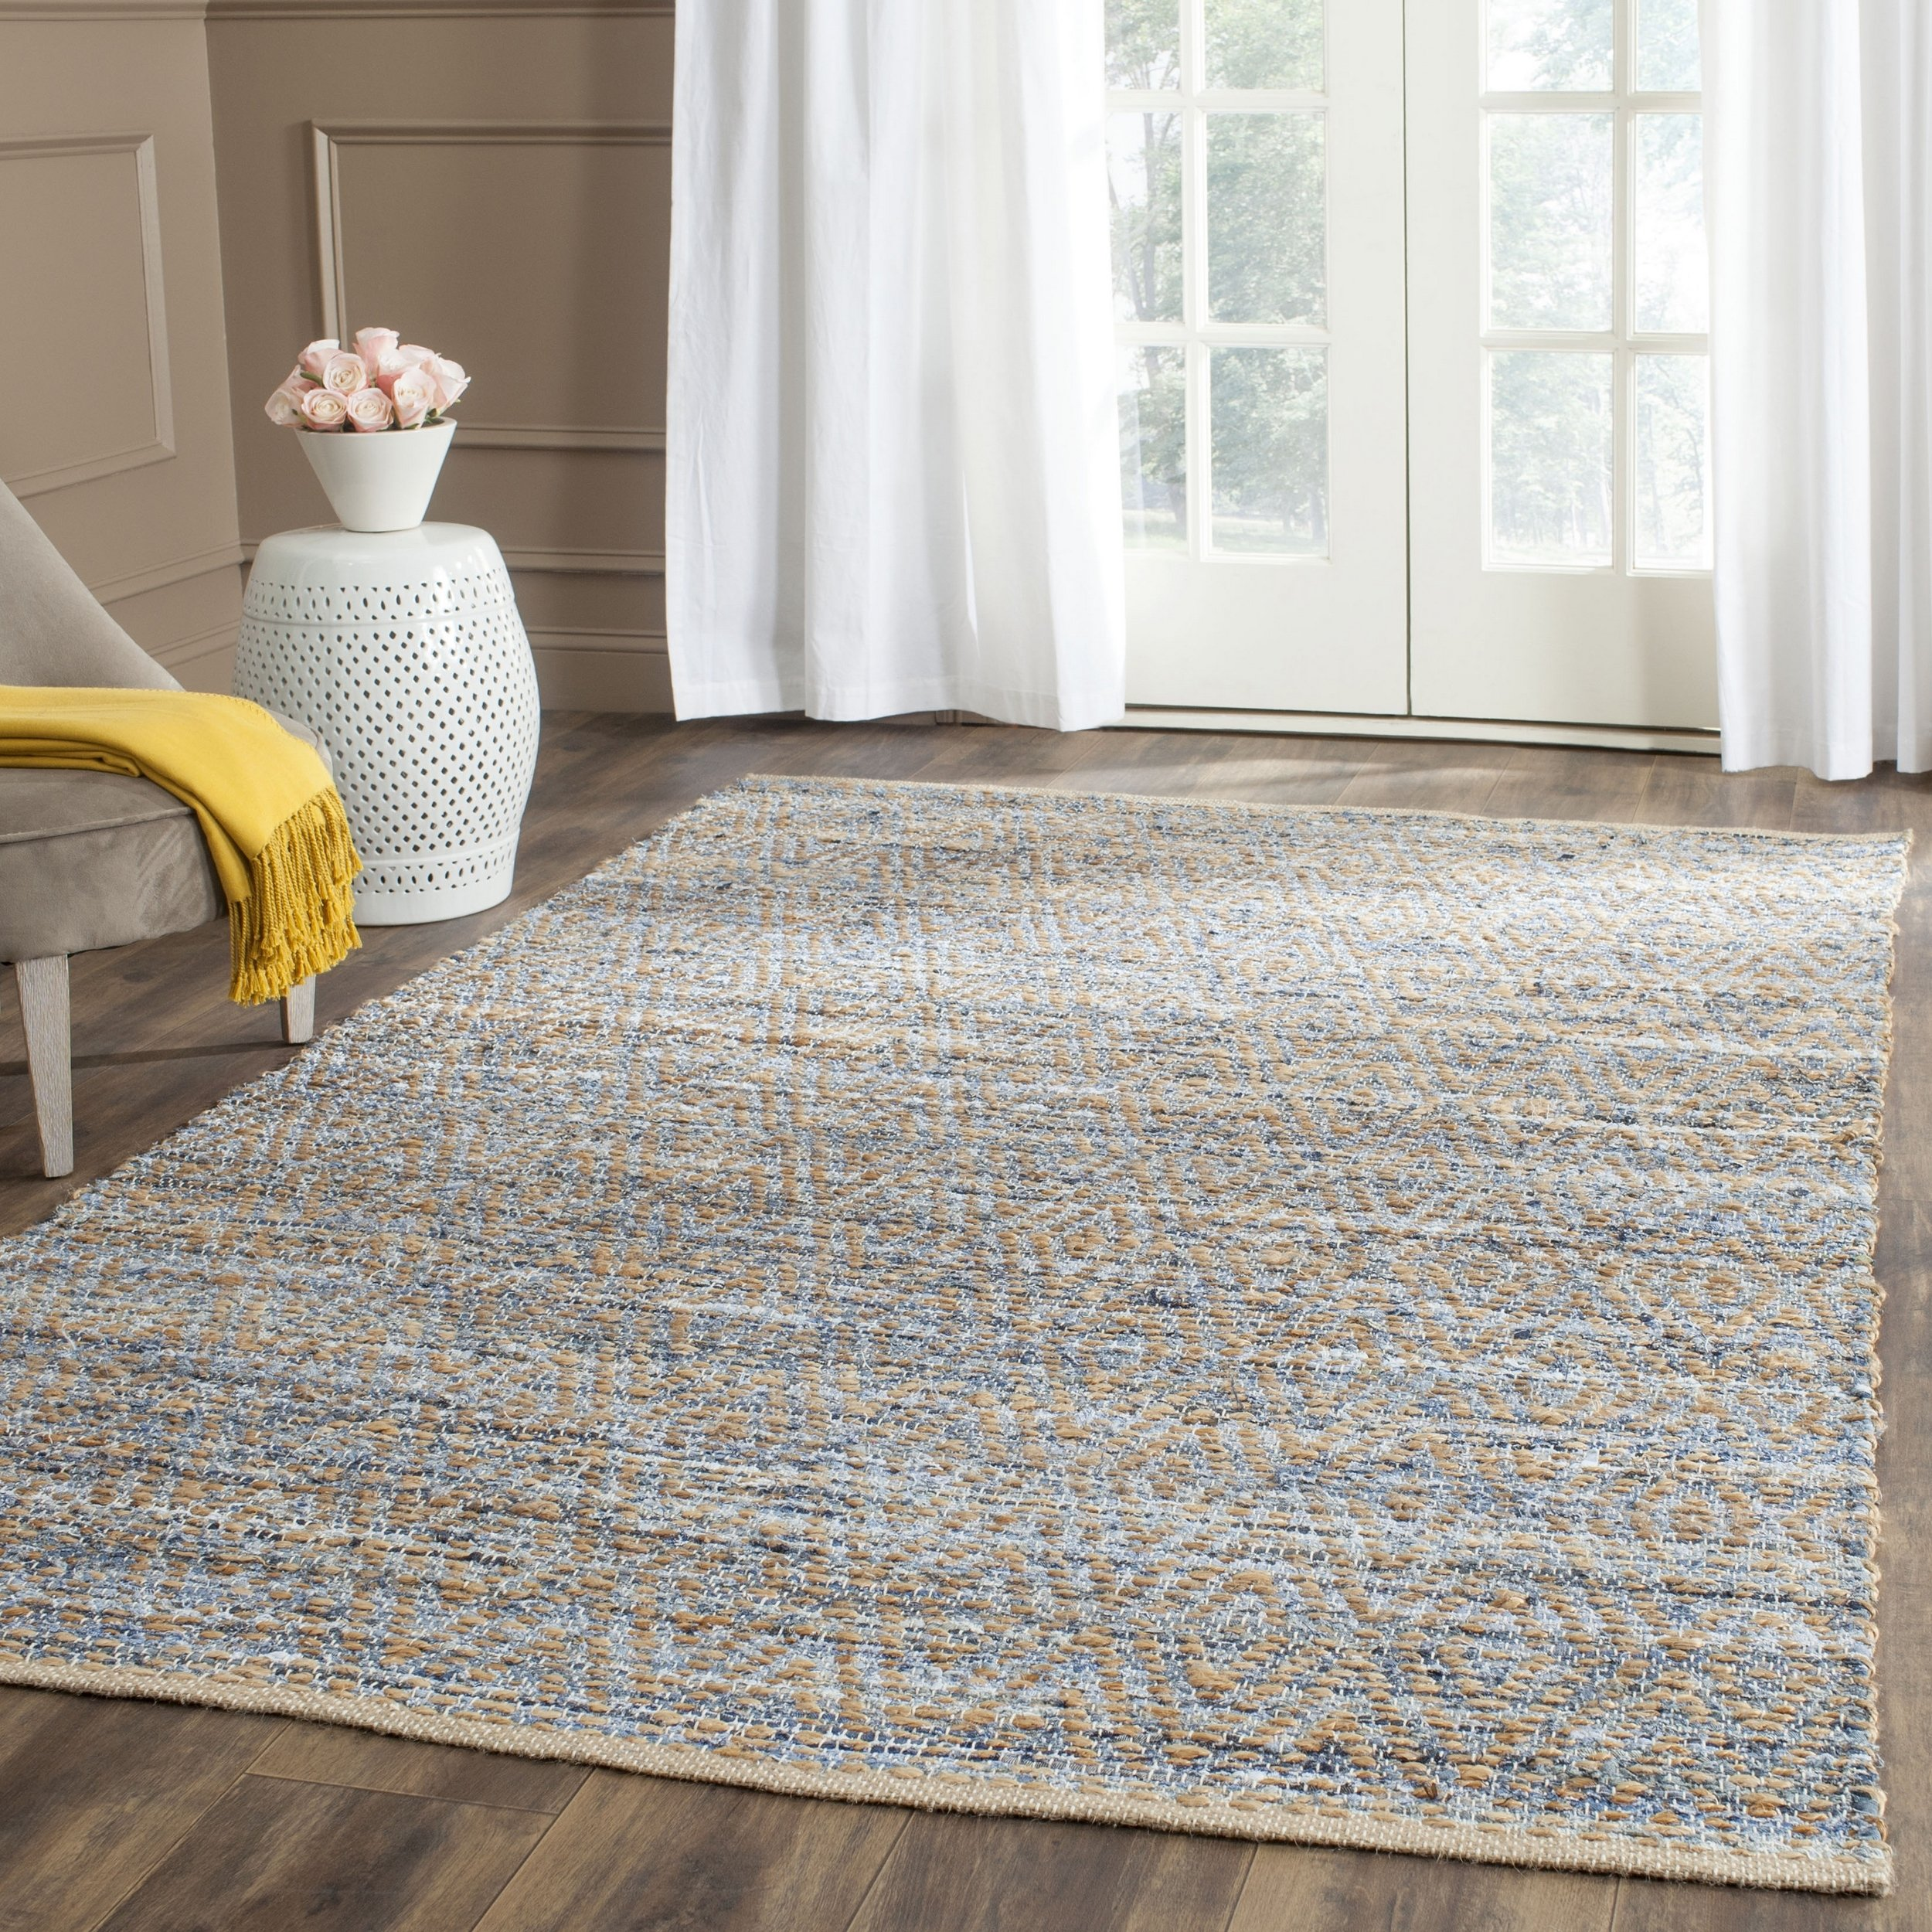 Safavieh Cape Cod Collection CAP350A Hand Woven Flatweave Chevron Natural and Blue Jute Square Area Rug (8' Square) by Safavieh